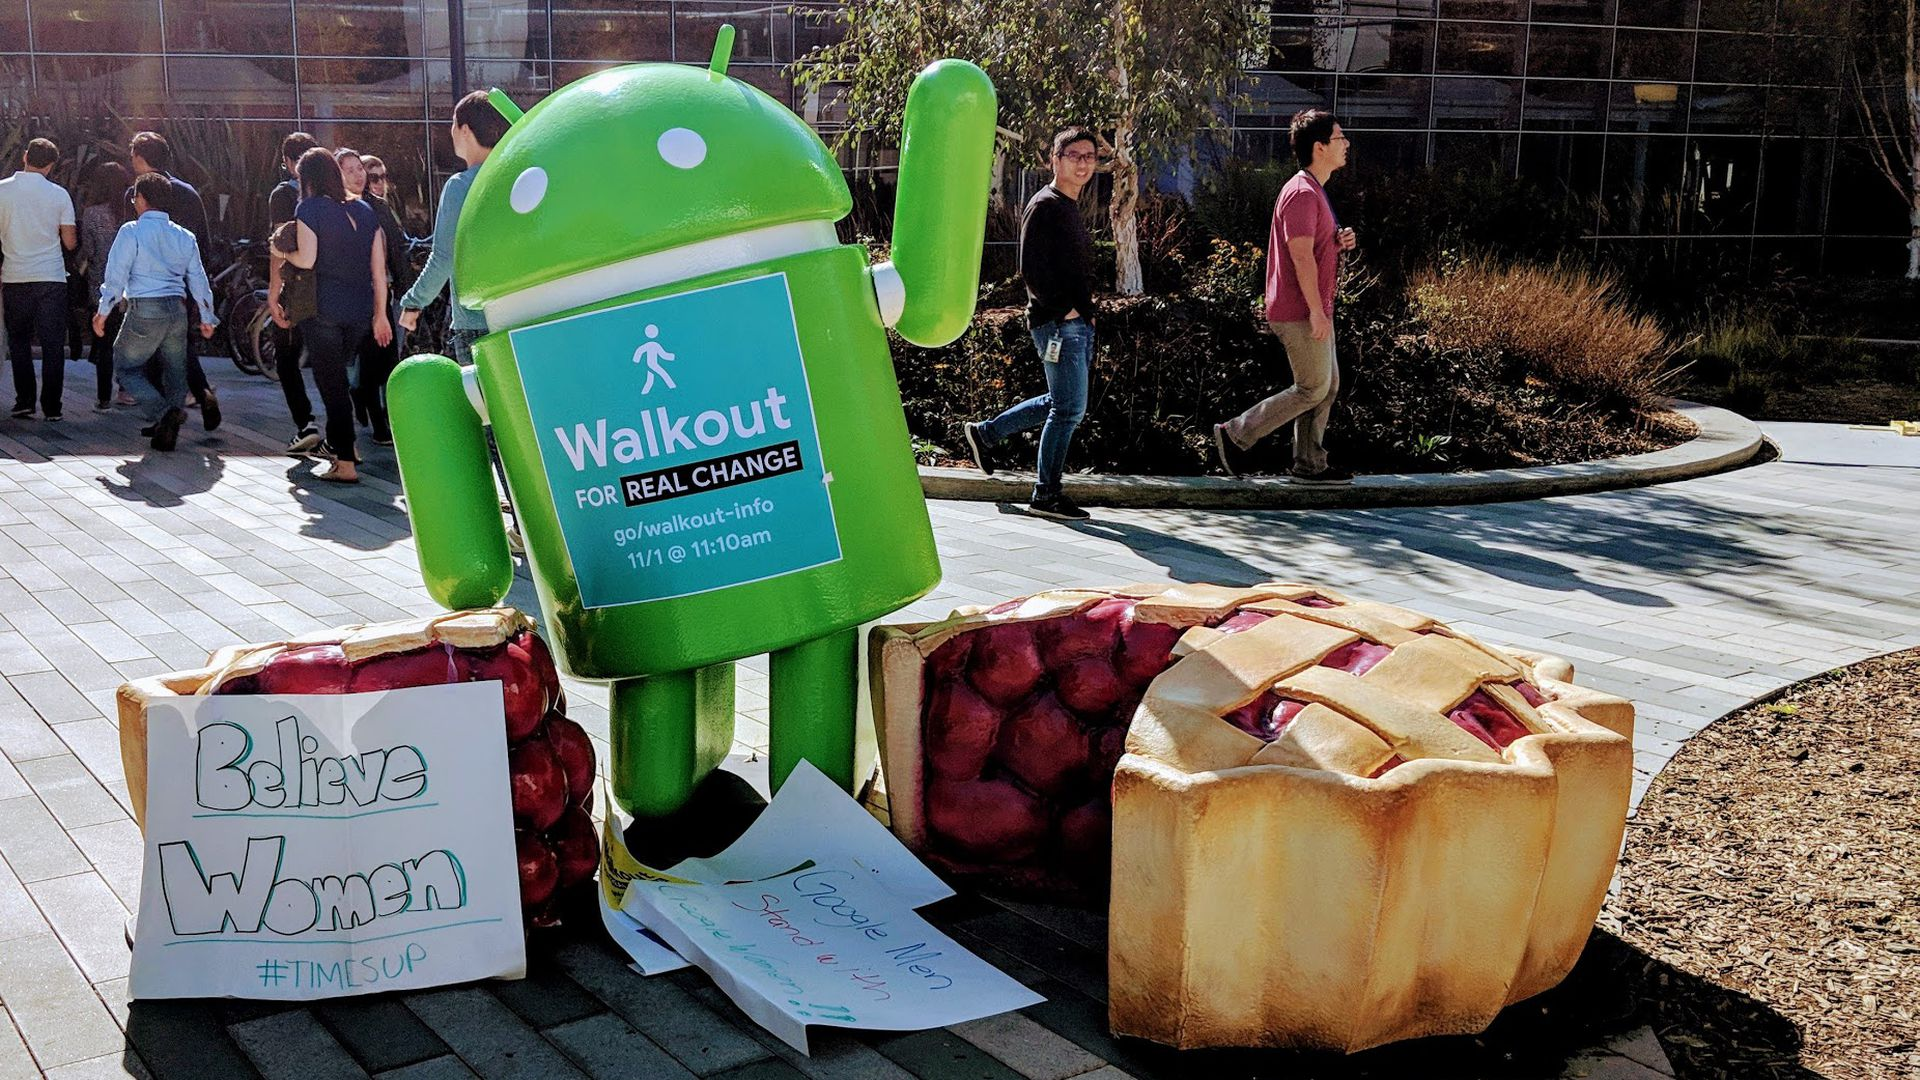 An Android Pie statue on Google's campus with signs from the worker protest.